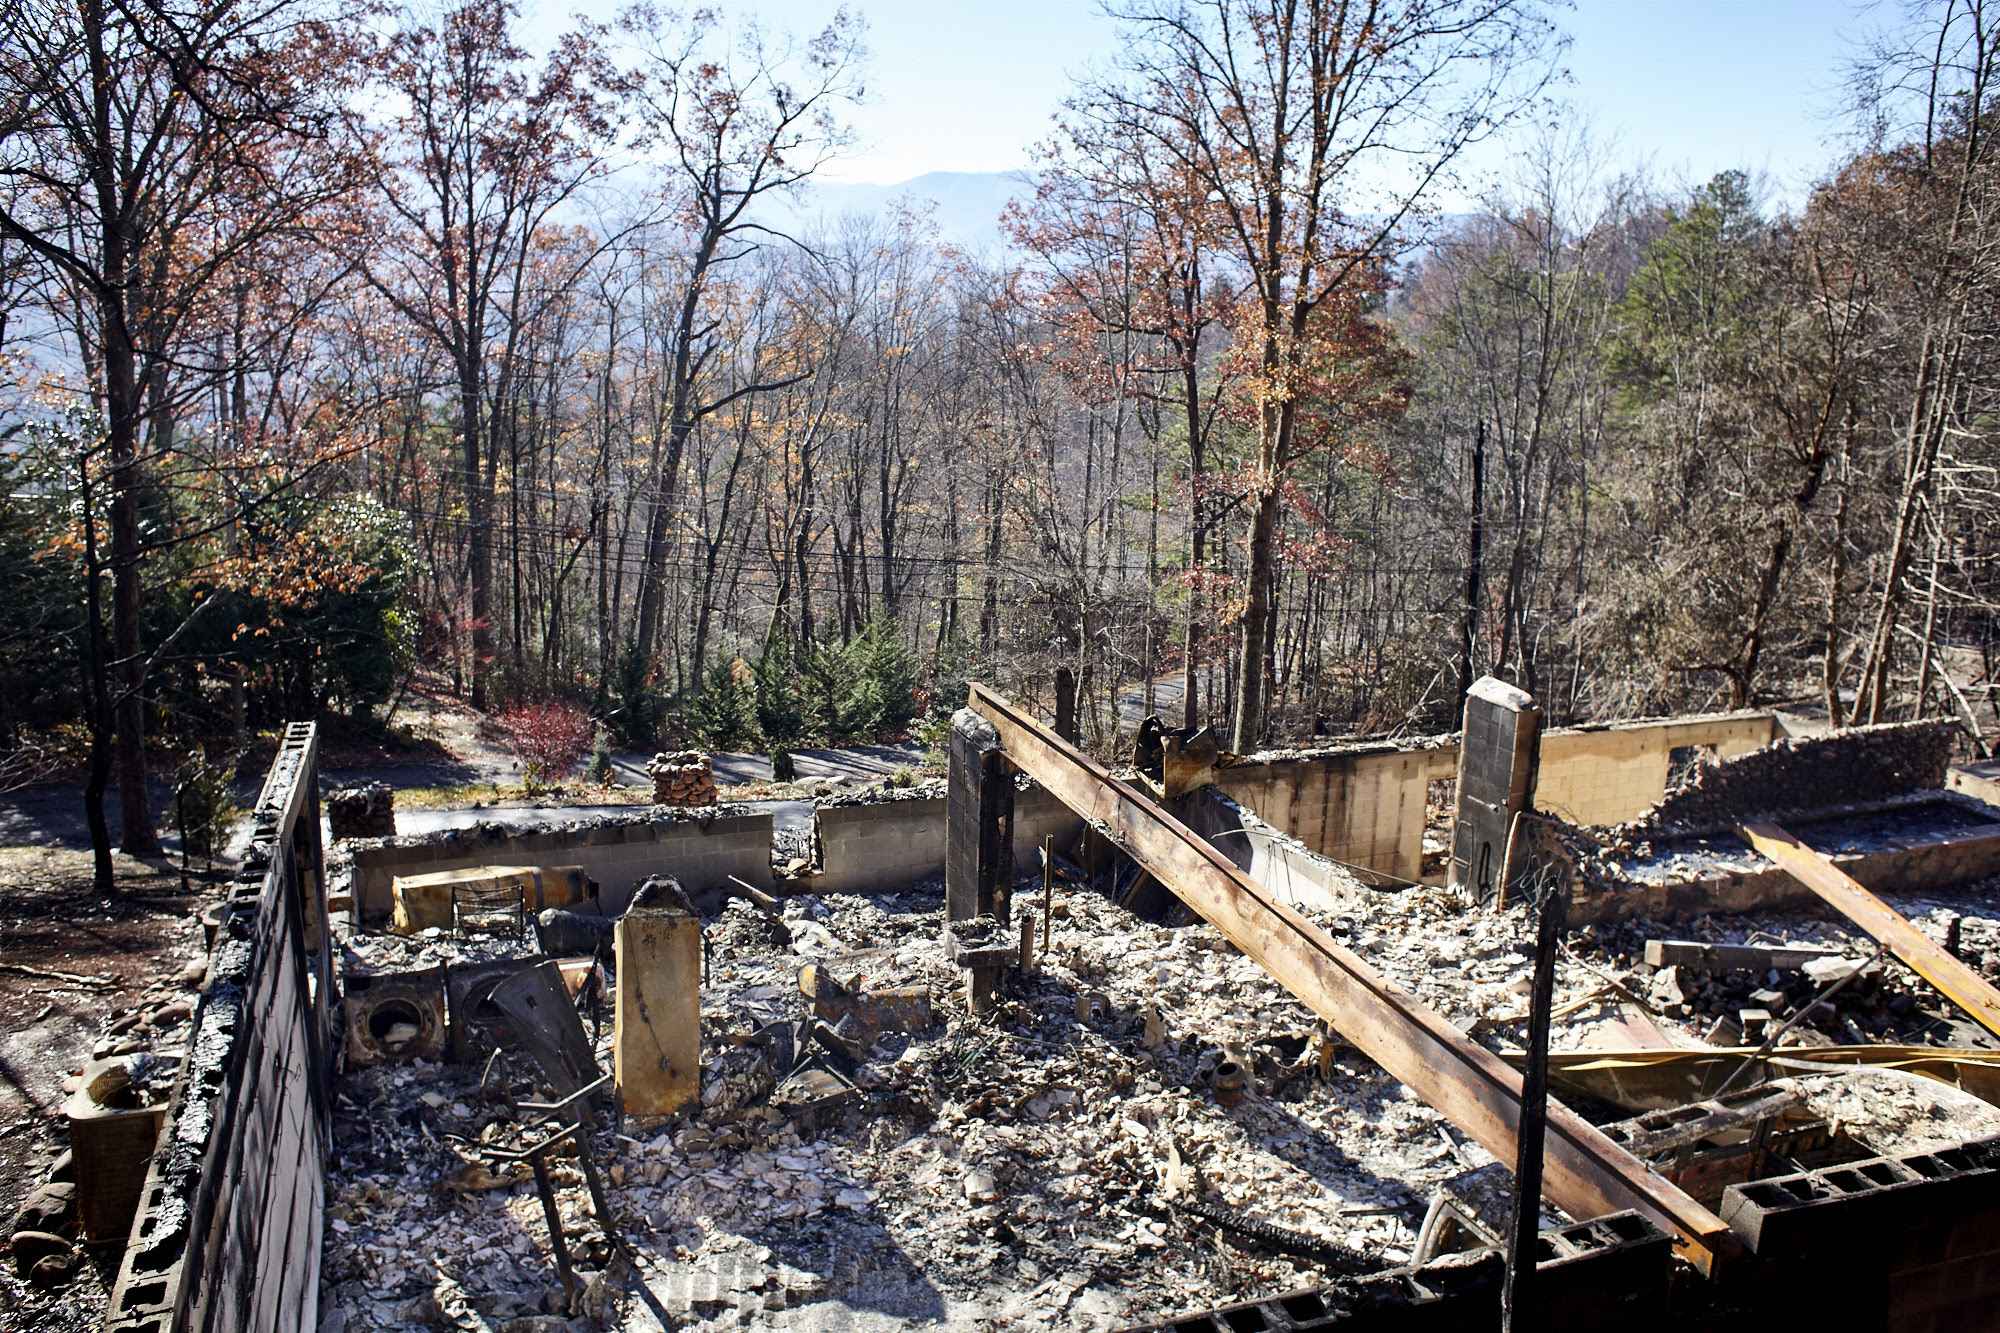 Wildfires have ravaged the hills and homes around Gatlinburg, TN. This site, on a ridge south of town, lost a home. (Photo by Shawn Poynter)